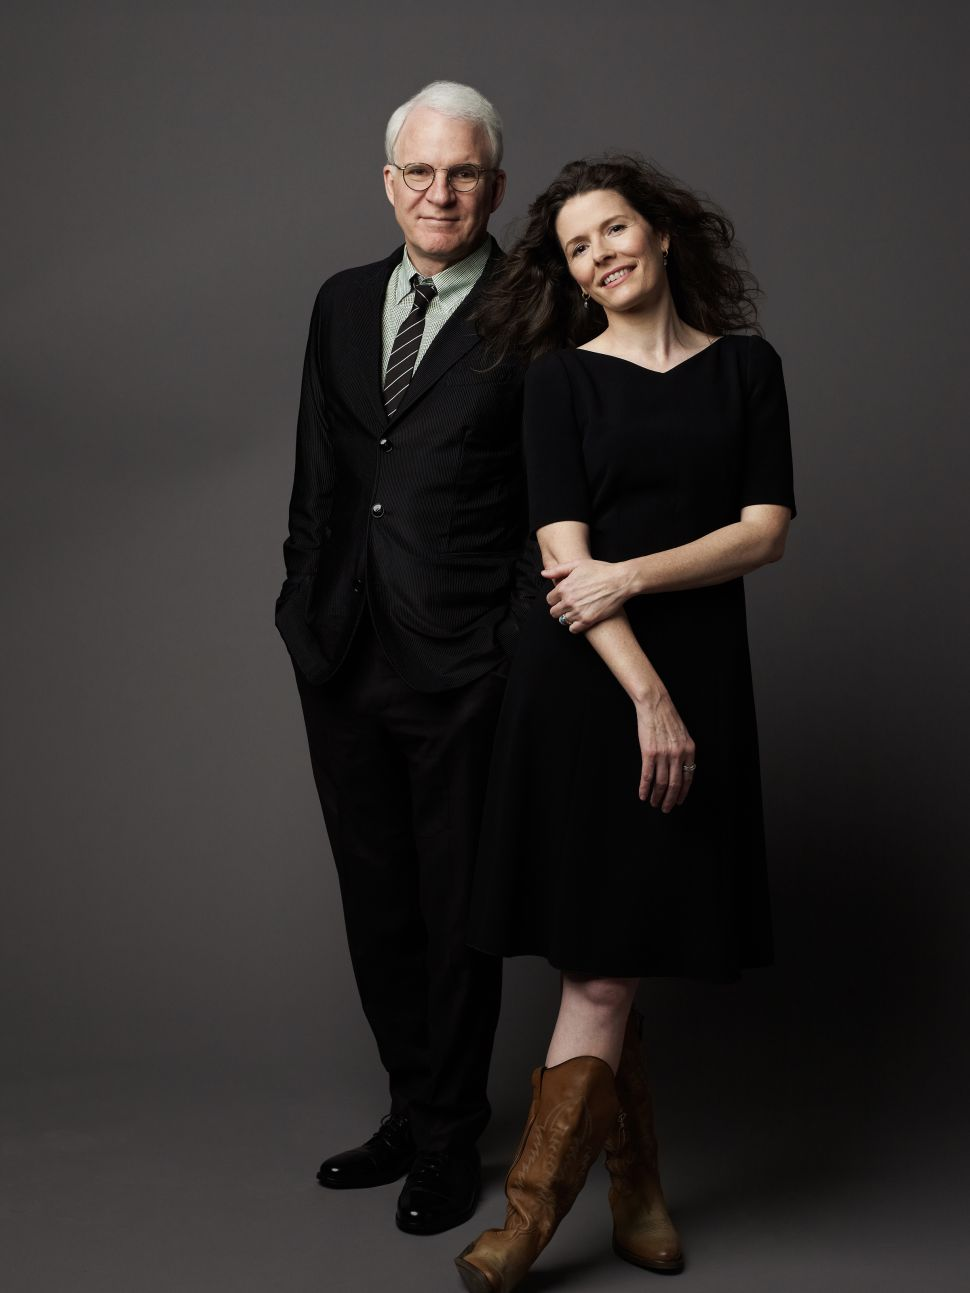 My Banjo Heaven: Steve Martin and Edie Brickell Are Coming to Town